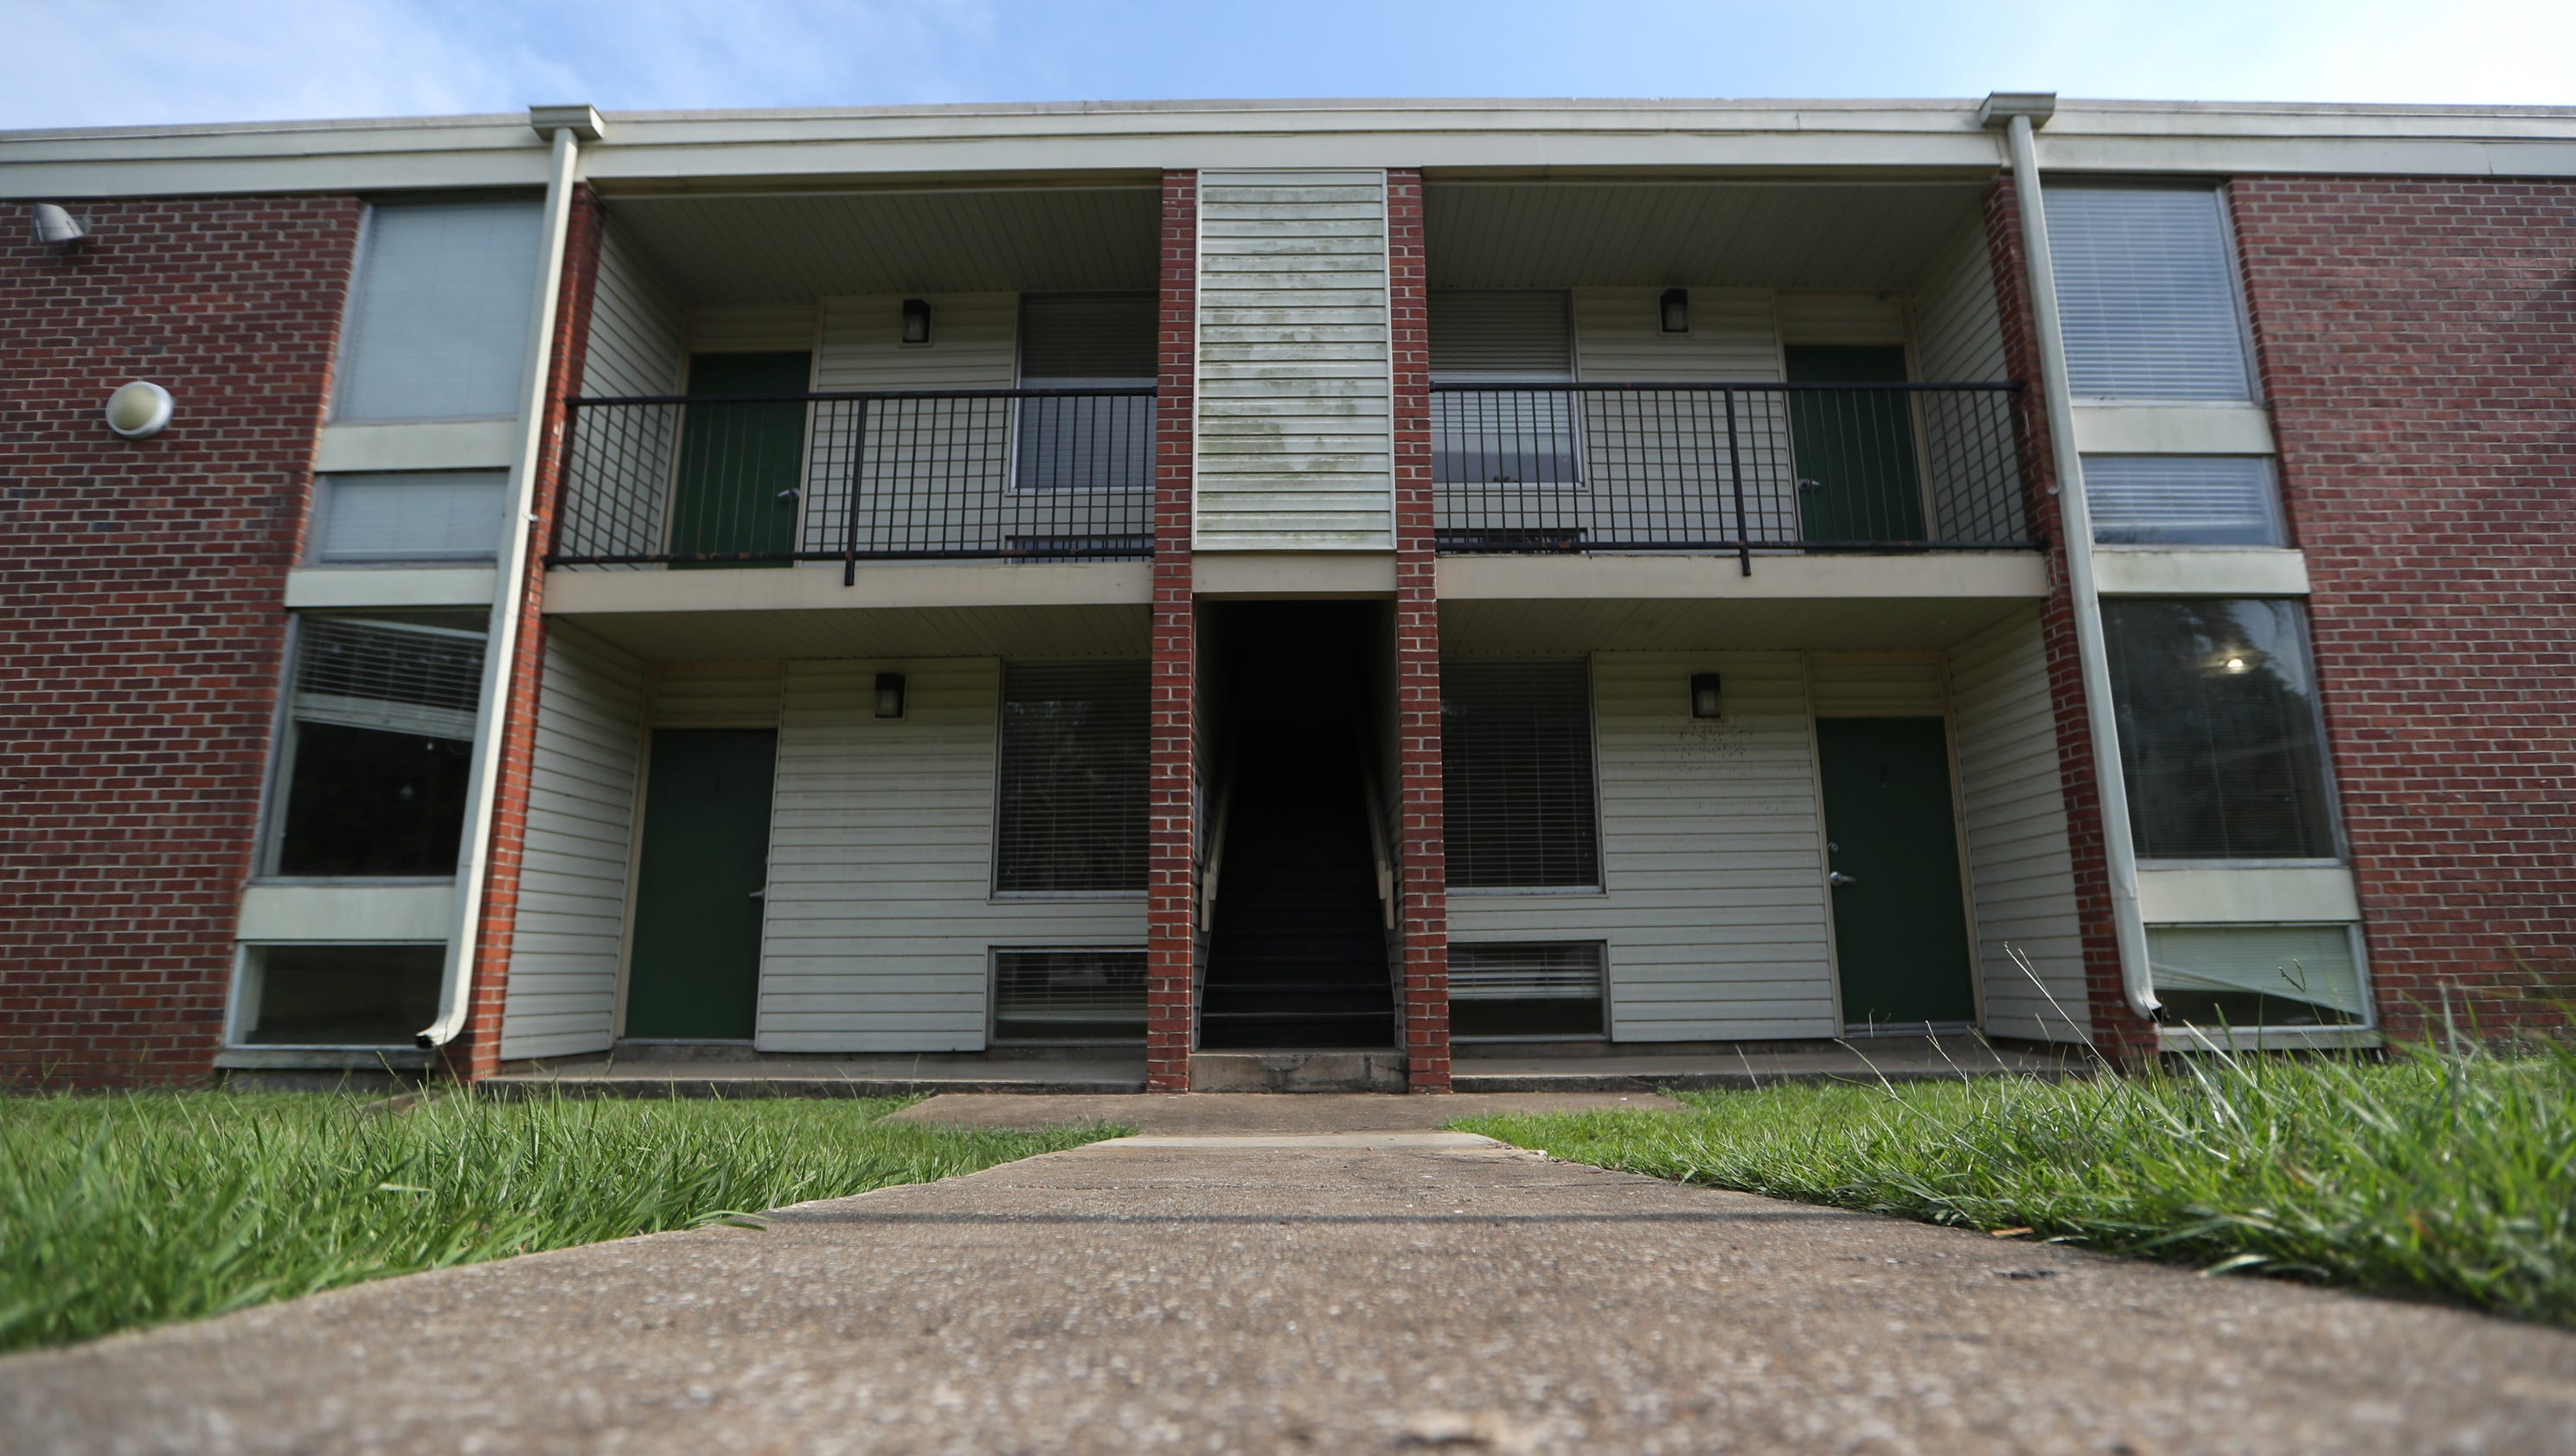 stay tlhcd tallahassee hotels suites us en apartments bedroom one candlewood extended hoteldetail